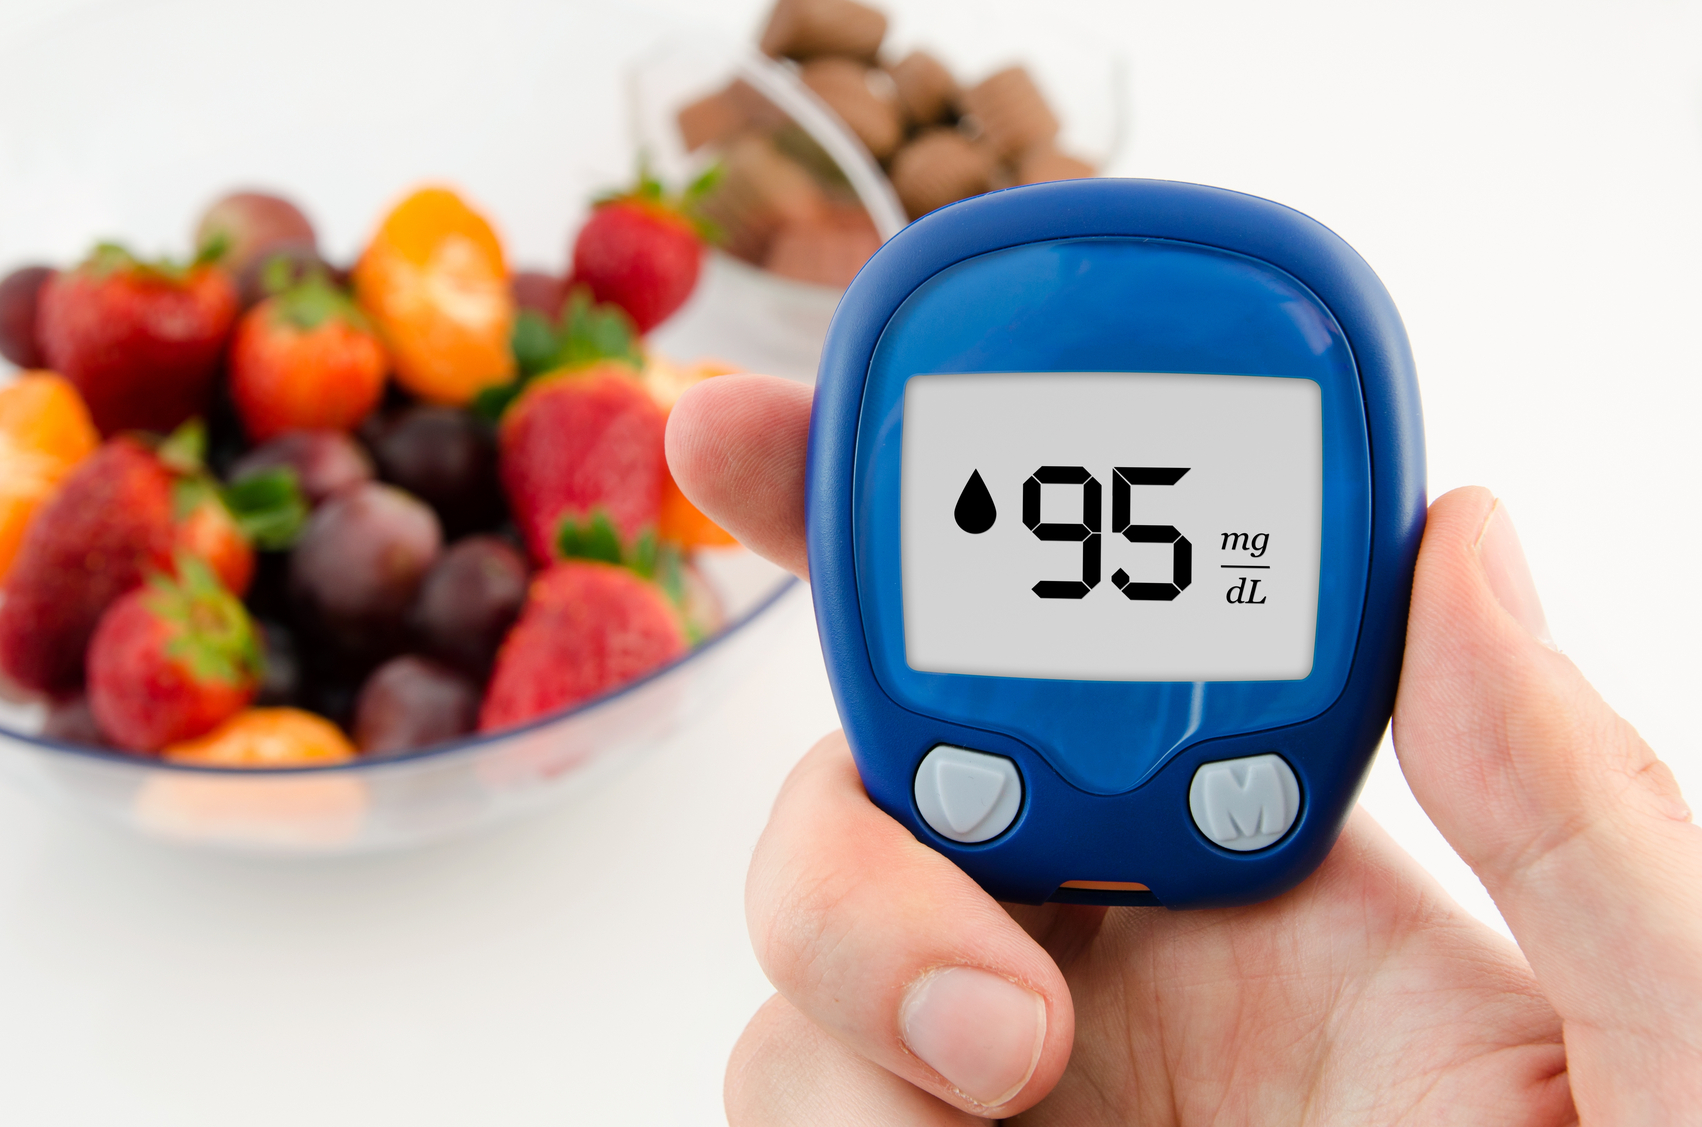 A proper diabetes diet helps to obtain better life quality